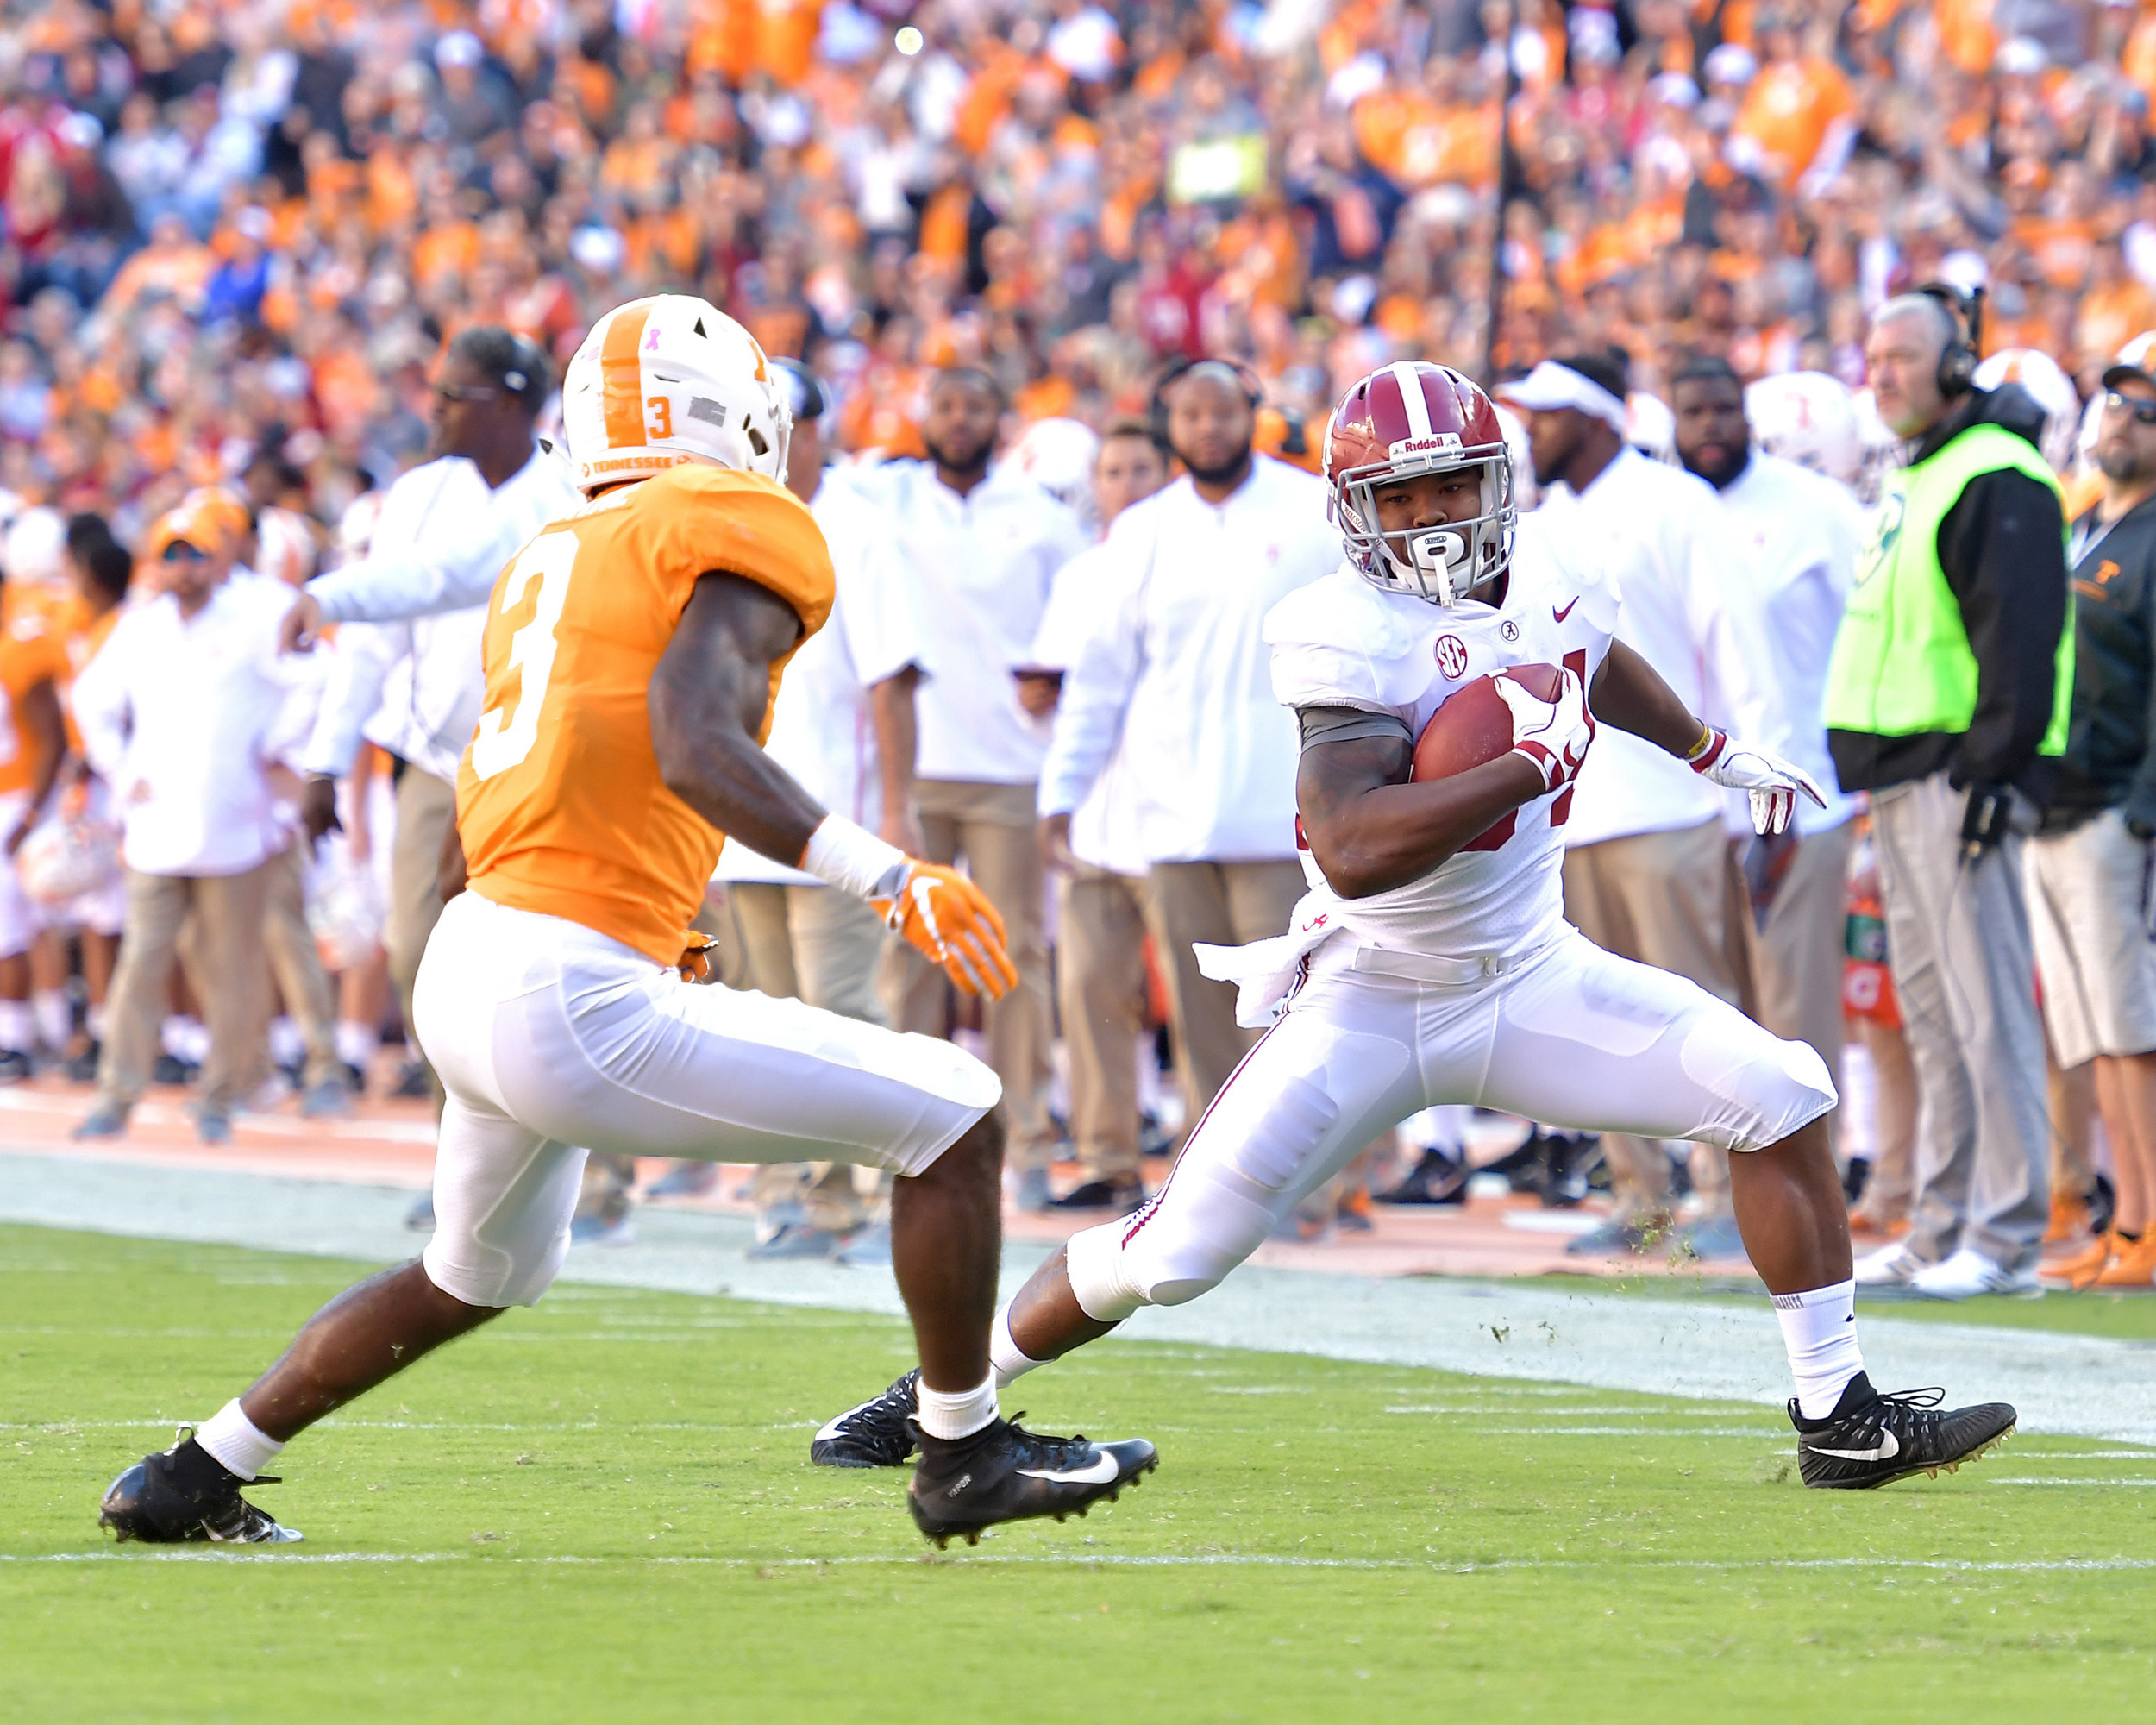 Alabama Crimson Tide running back Damien Harris (34) tries to elude Tennessee Volunteers defensive back Marquill Osborne (3) after a catch in the first half of the NCAA football game on Saturday, Oct. 20, 2018, at Neyland Stadium in Knoxville. Tenn. Alabama wins 58-21. (Photo by Lee Walls)